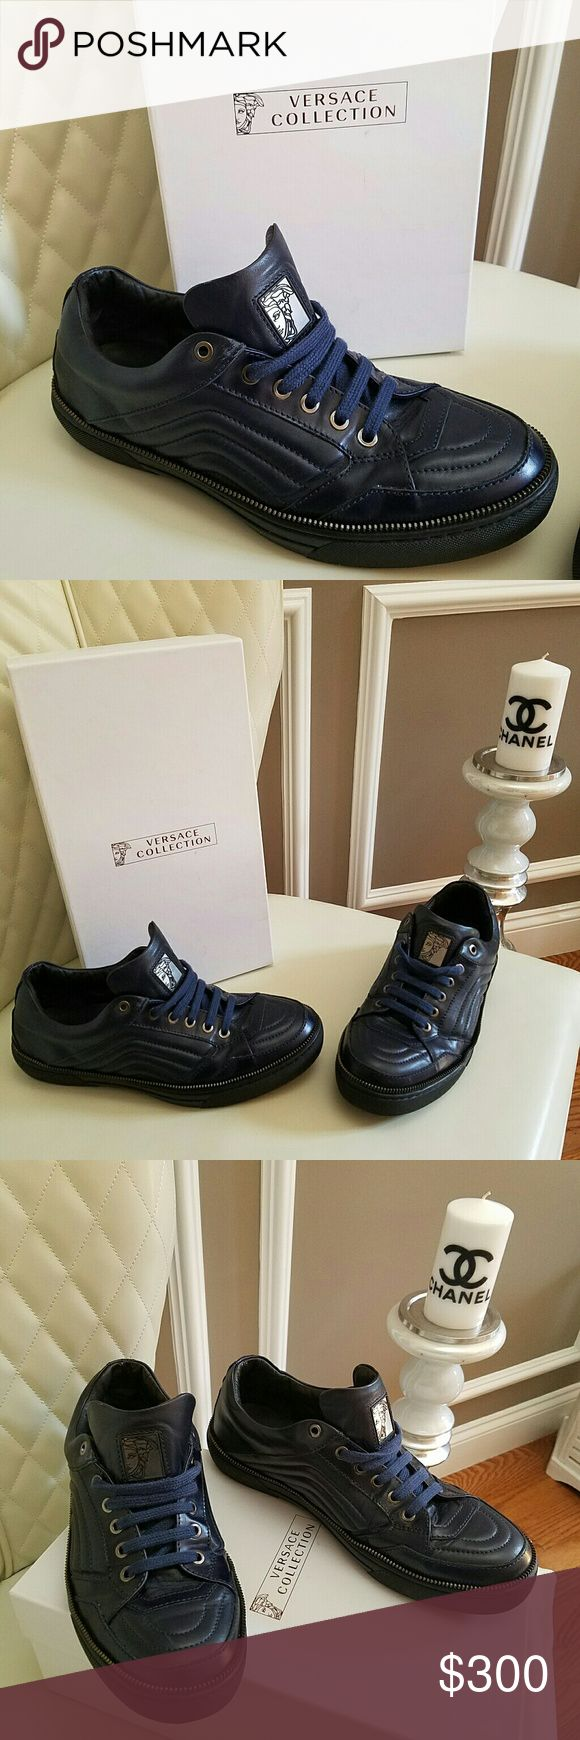 Men's Versace Sneakers Leather Shoes Size 9 EU 42 Brand new Versace men's sneakers size 9 EU 42 Retail price  $450 Versace Shoes Sneakers